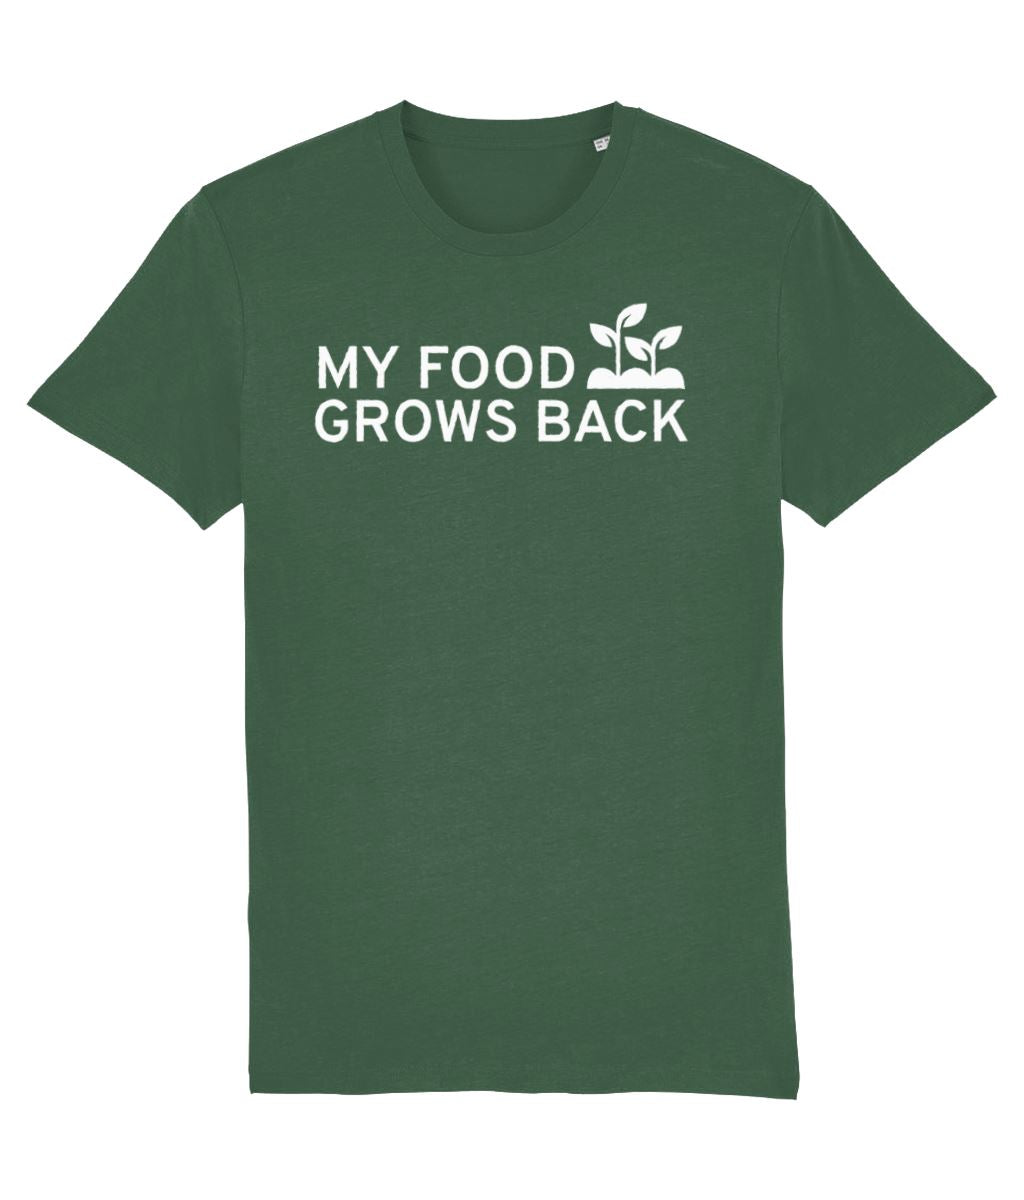 """My Food Grows Back"" Vegan T-Shirt - 100% Organic Cotton (Unisex) - Dark Clothing Vegan Original Bottle Green X-Small"